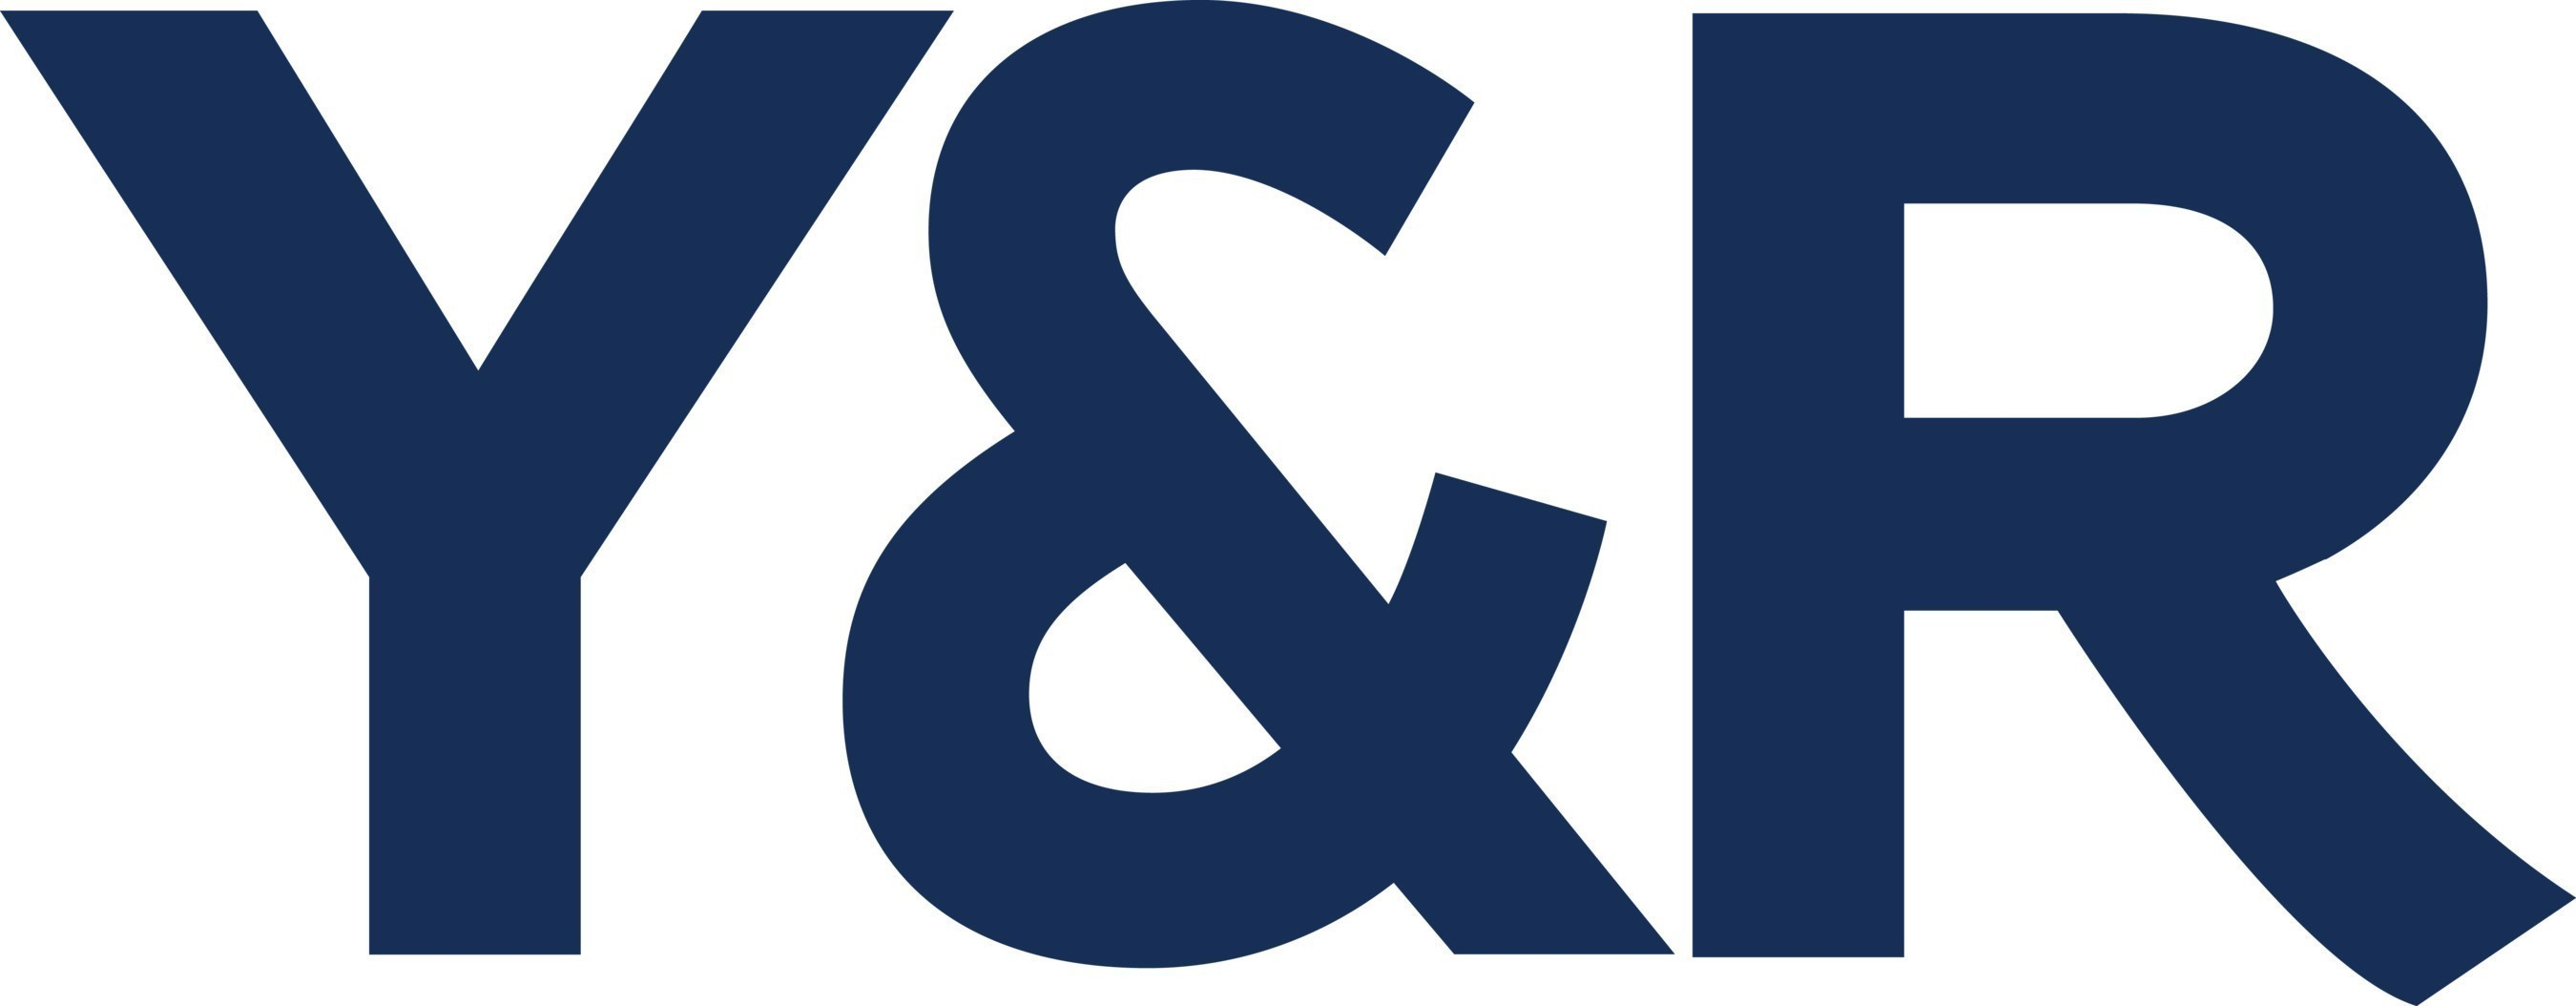 Y&R Most Awarded Agency Network At 37th Annual AWARD Awards